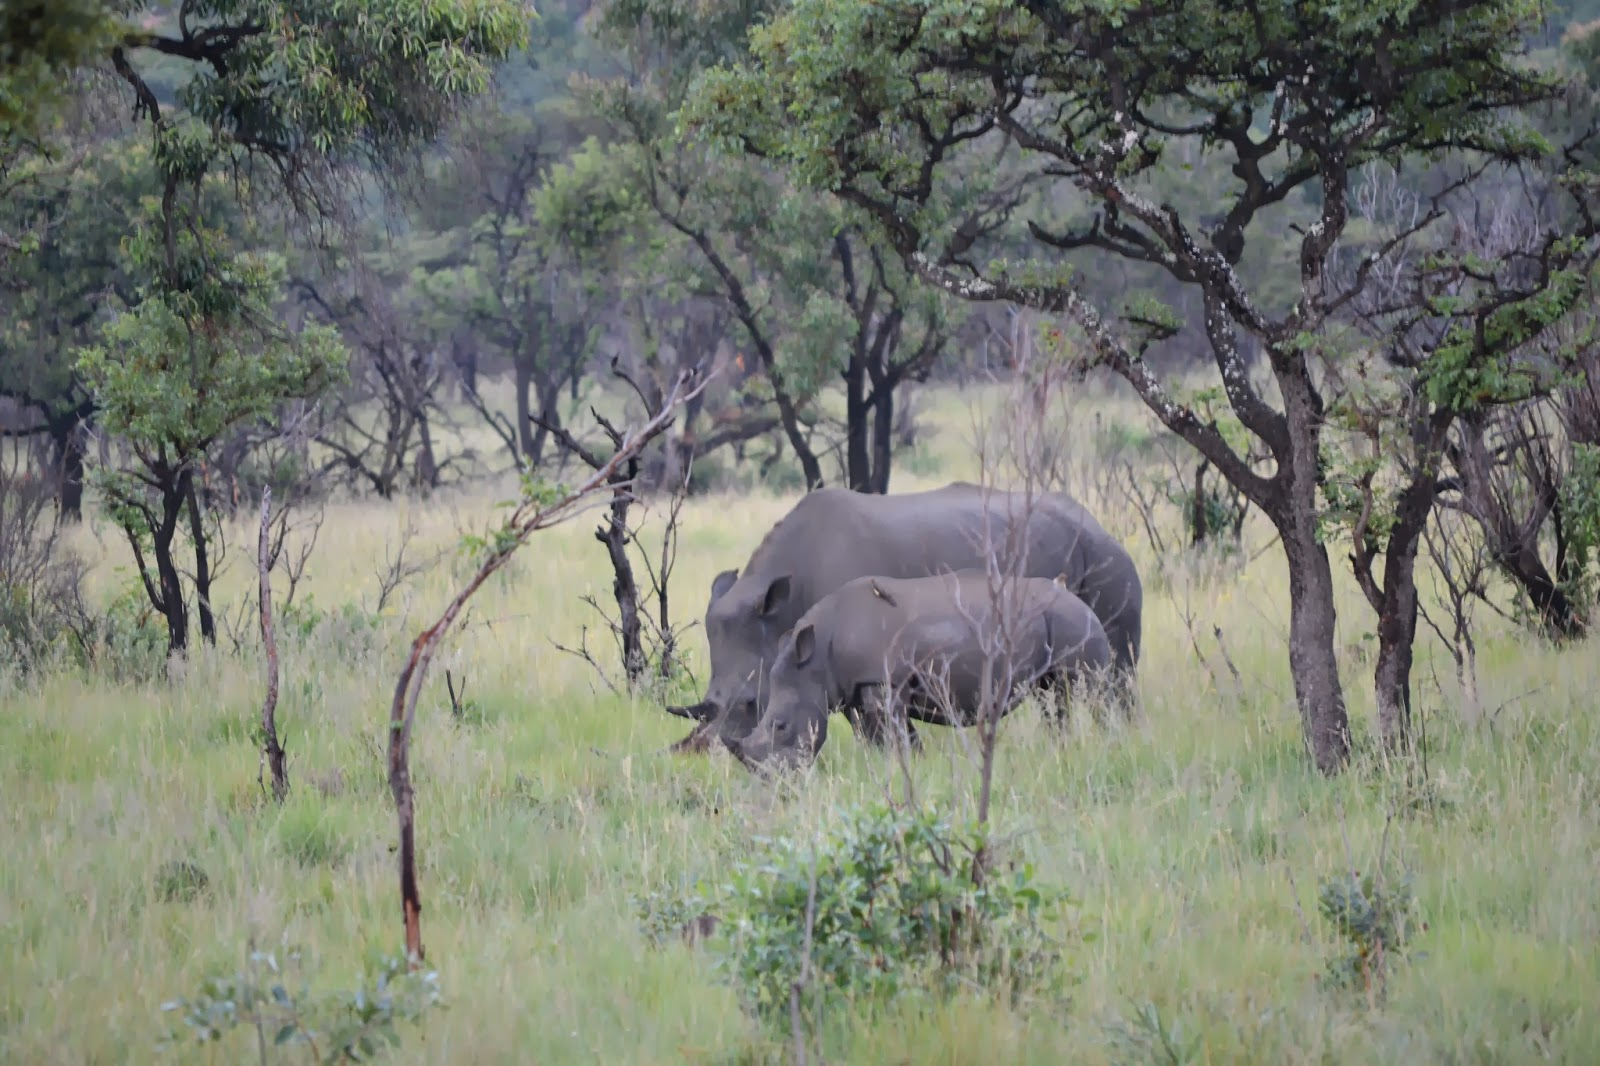 Rhino mum and baby in Mabula